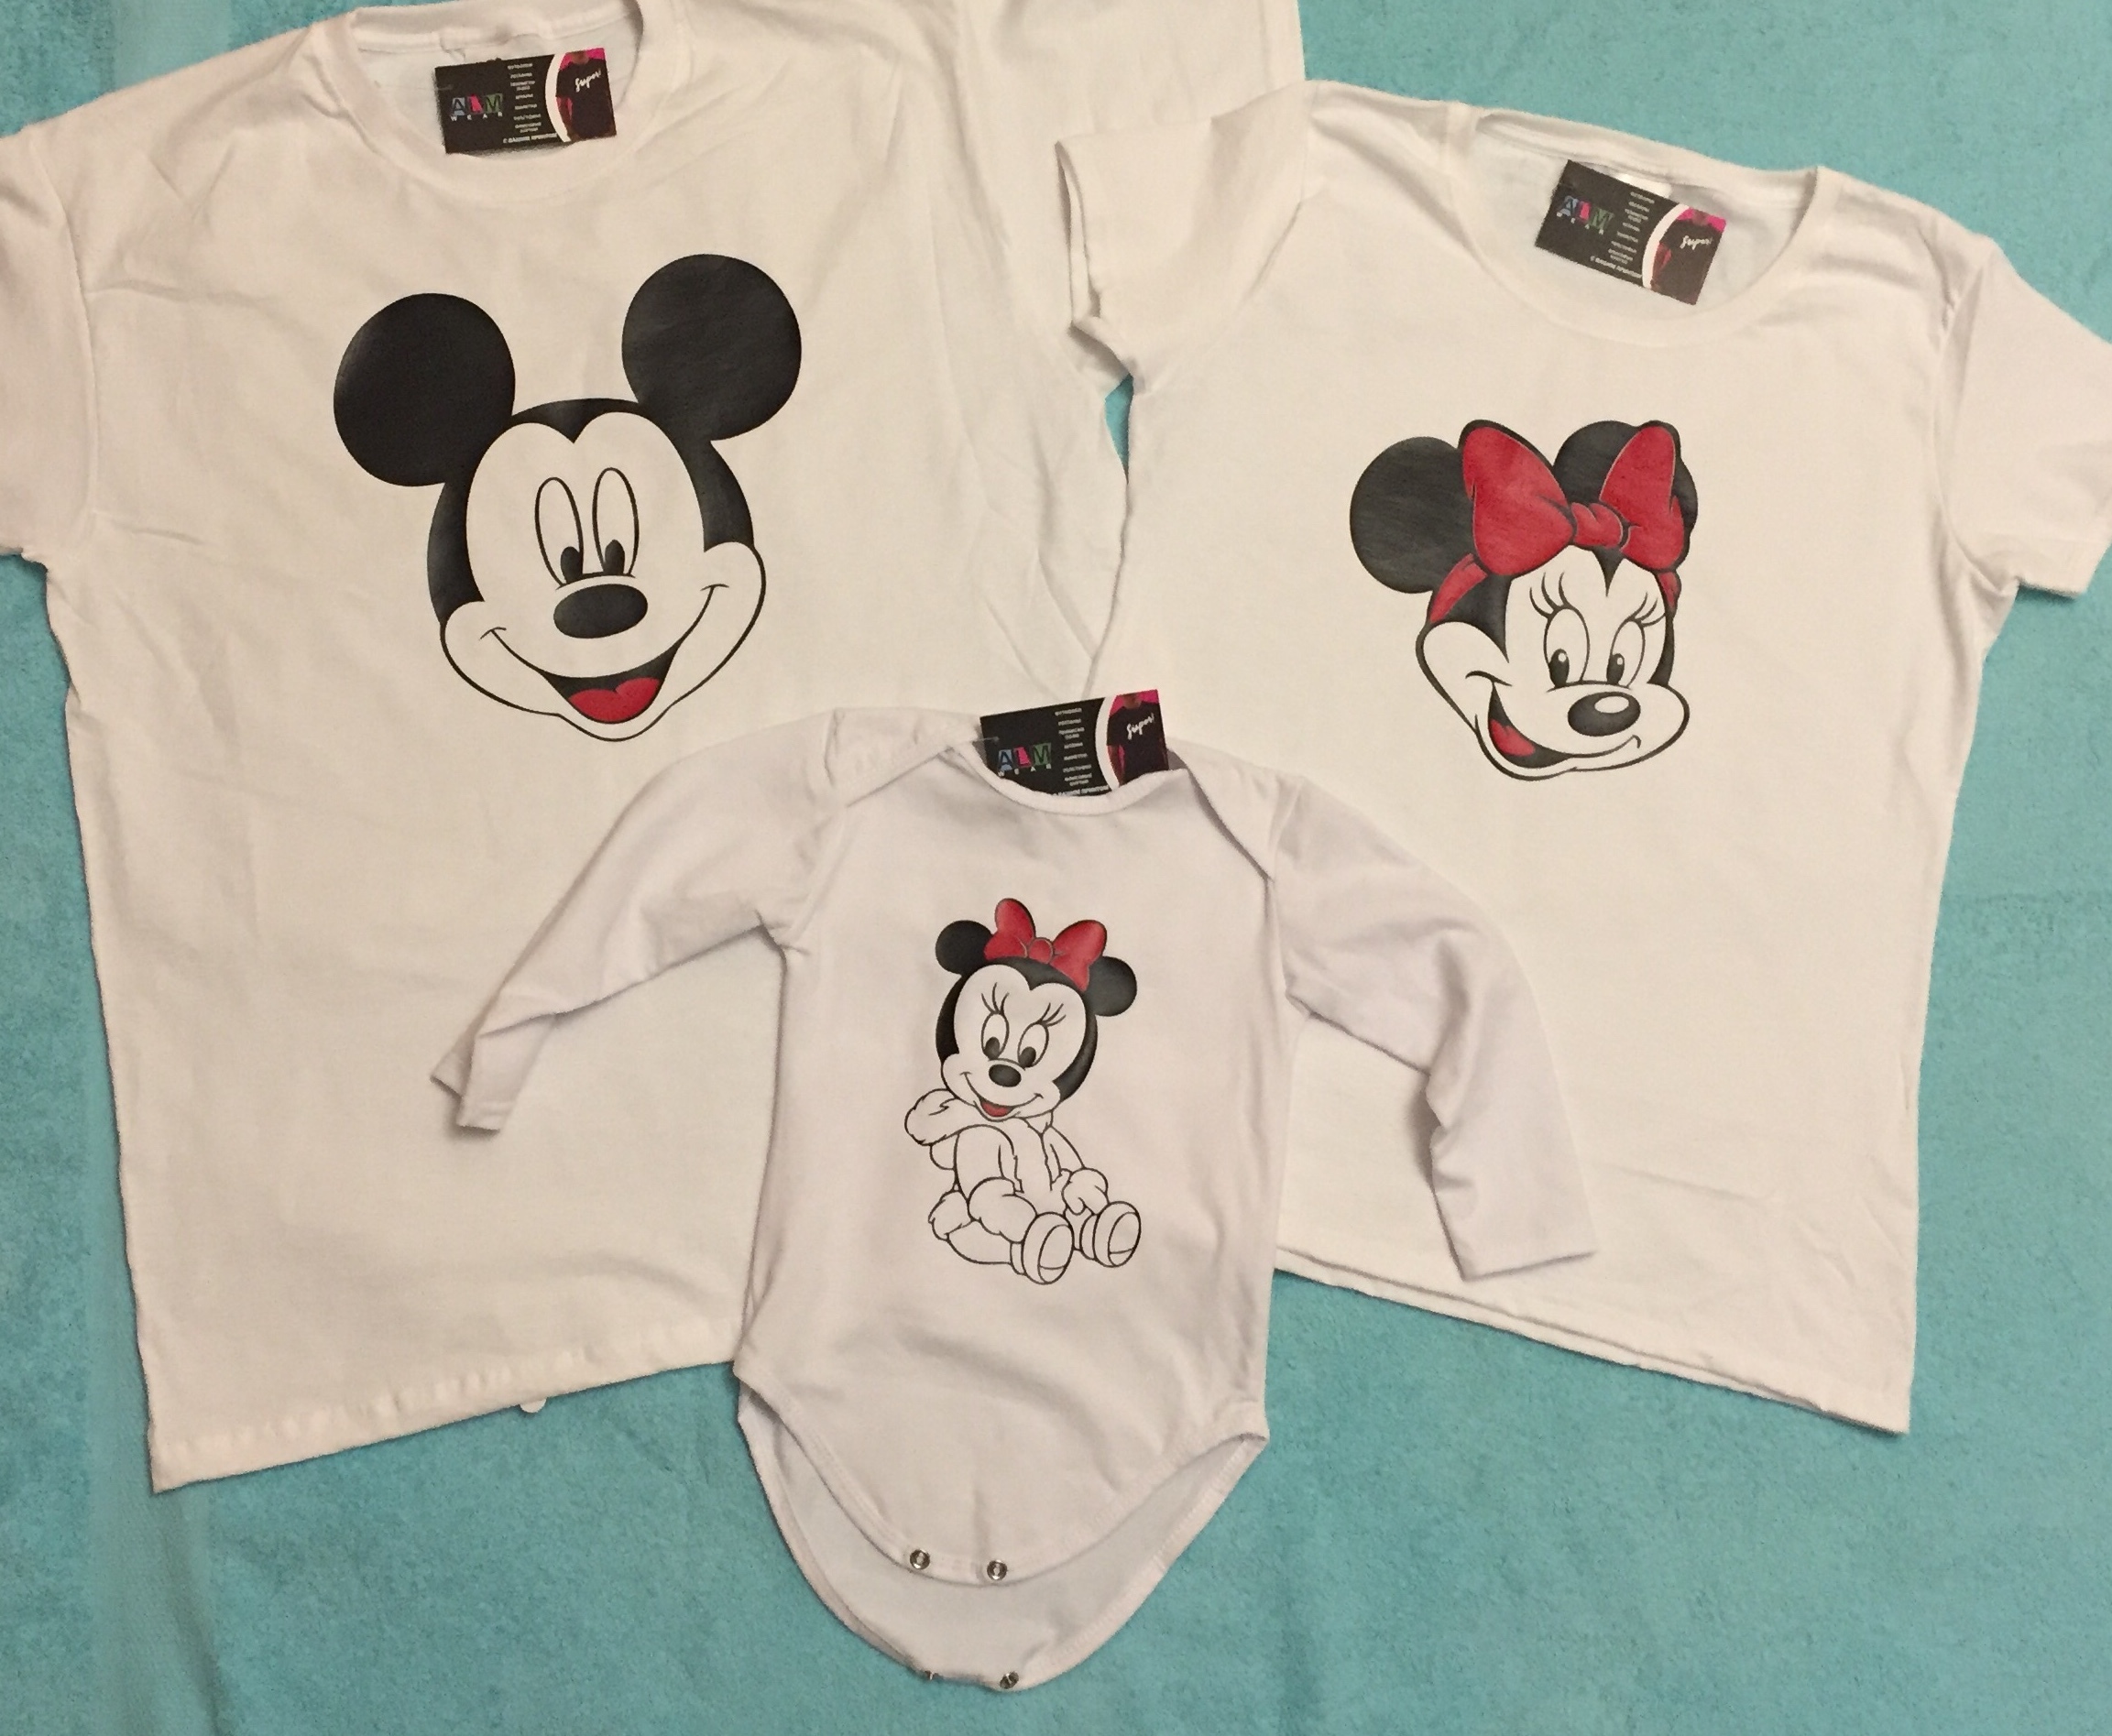 986761348 Adorable Matching Family Look, Mickey Mouse Dad, Minnie Mouse Mom, Mini  Minnie Mouse